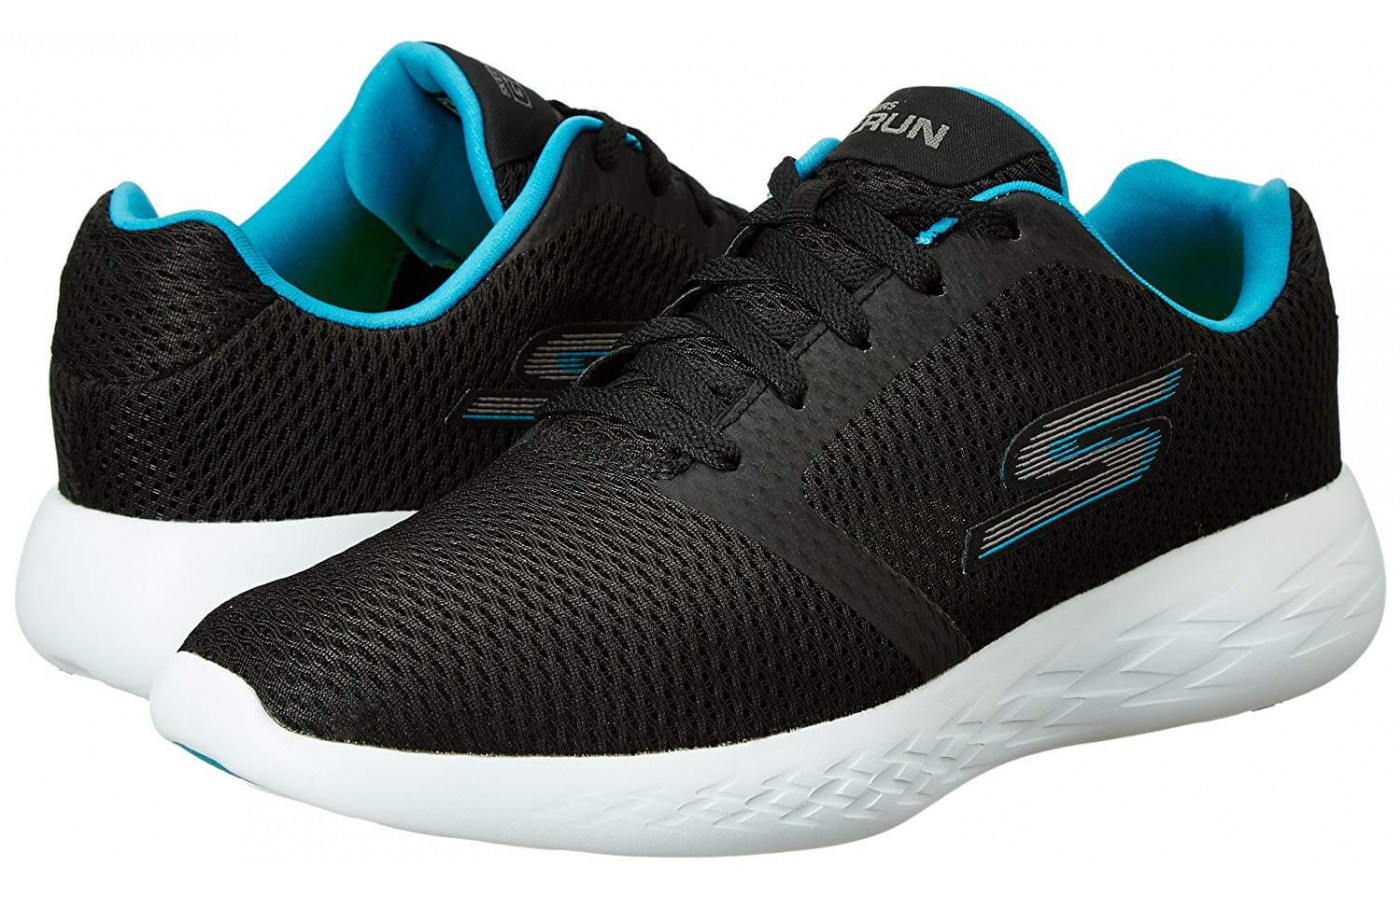 Sketchers GOrun 600 Refine double angled side view